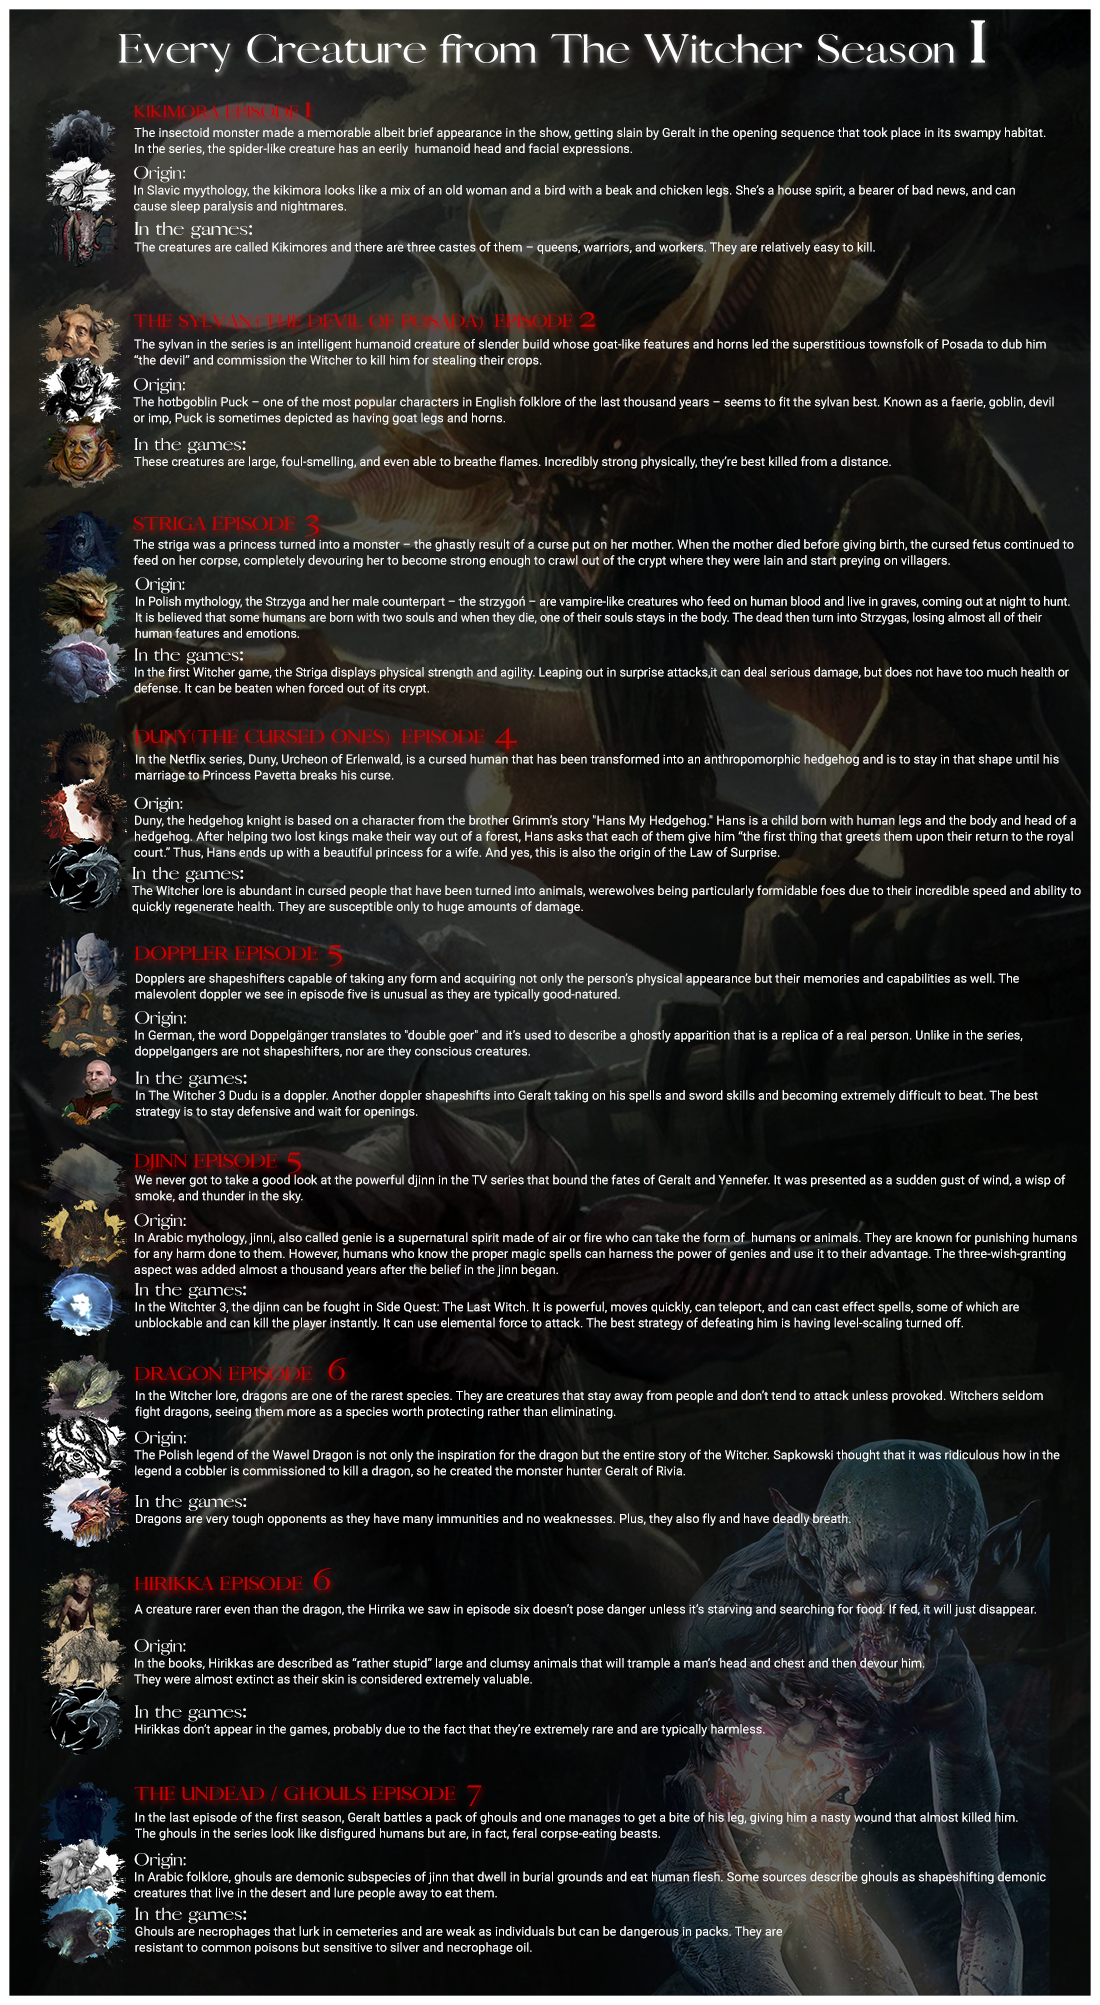 Every Creature in The Witcher from Season 1, an infographic